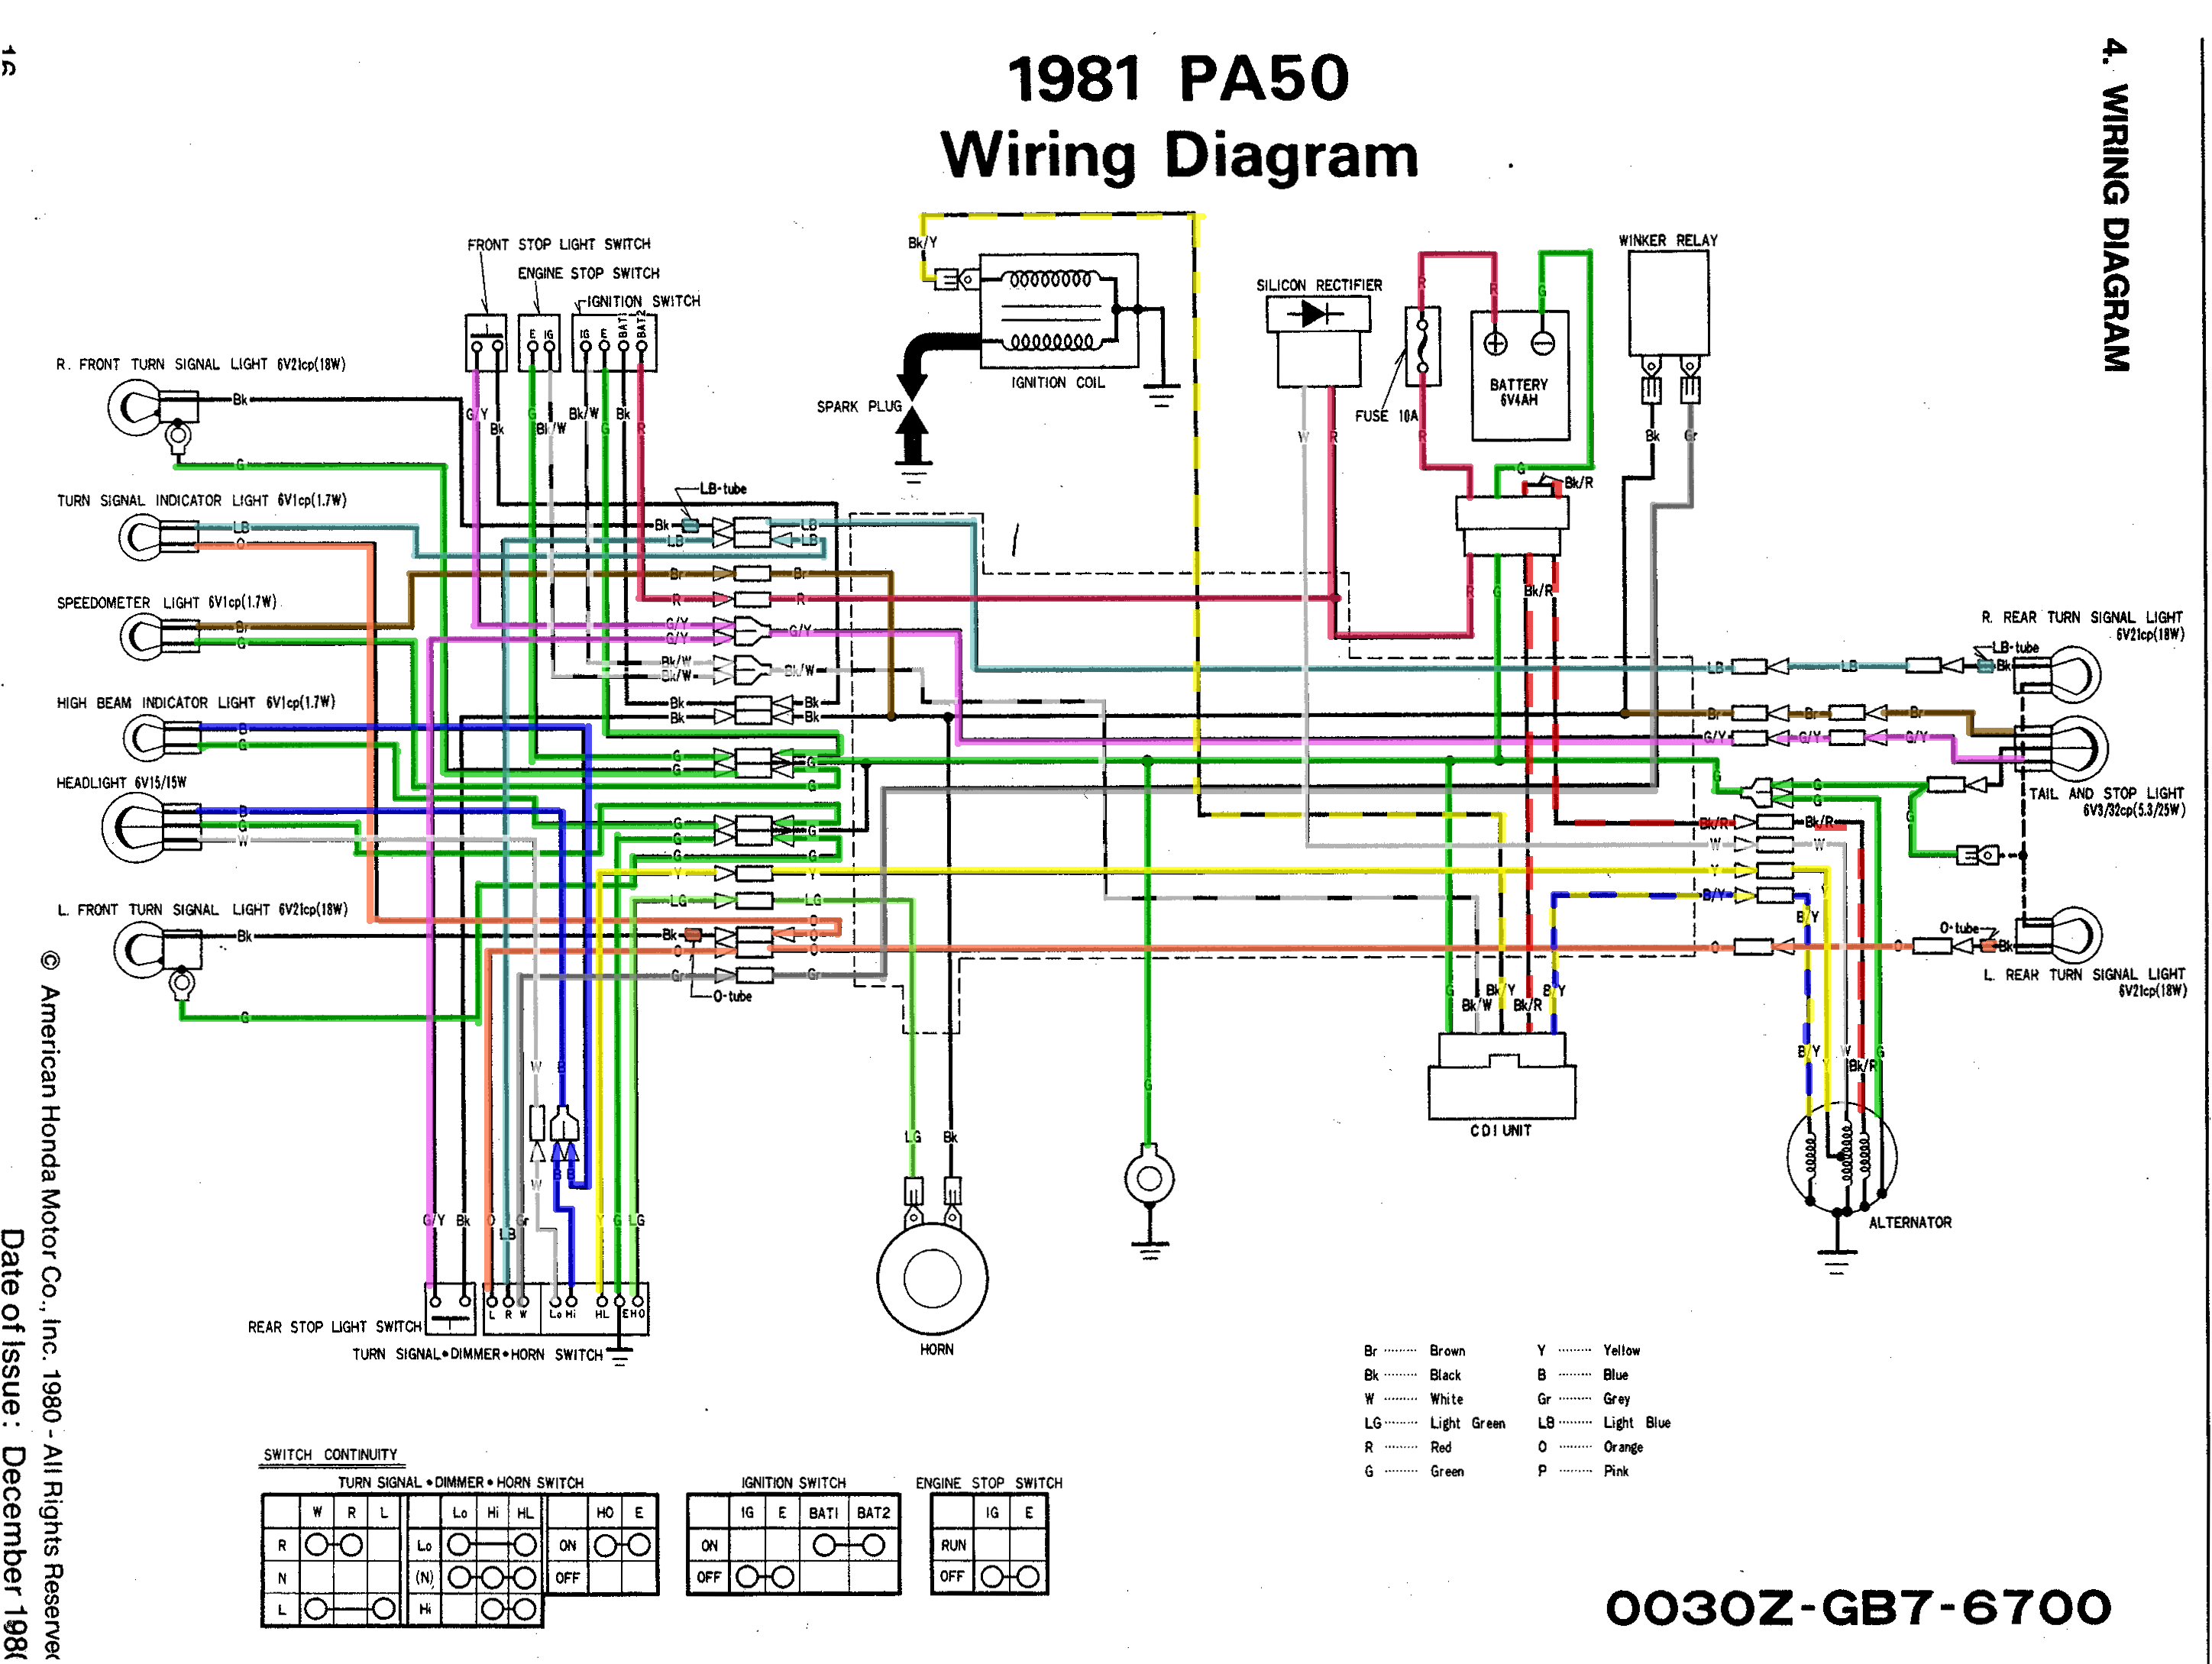 Wiring Diagram Likewise Chinese Scooter Further Honda ... on oh diagram, ac diagram, cd diagram, vn diagram, pe diagram, vg diagram, ar diagram, ba diagram, ct diagram,